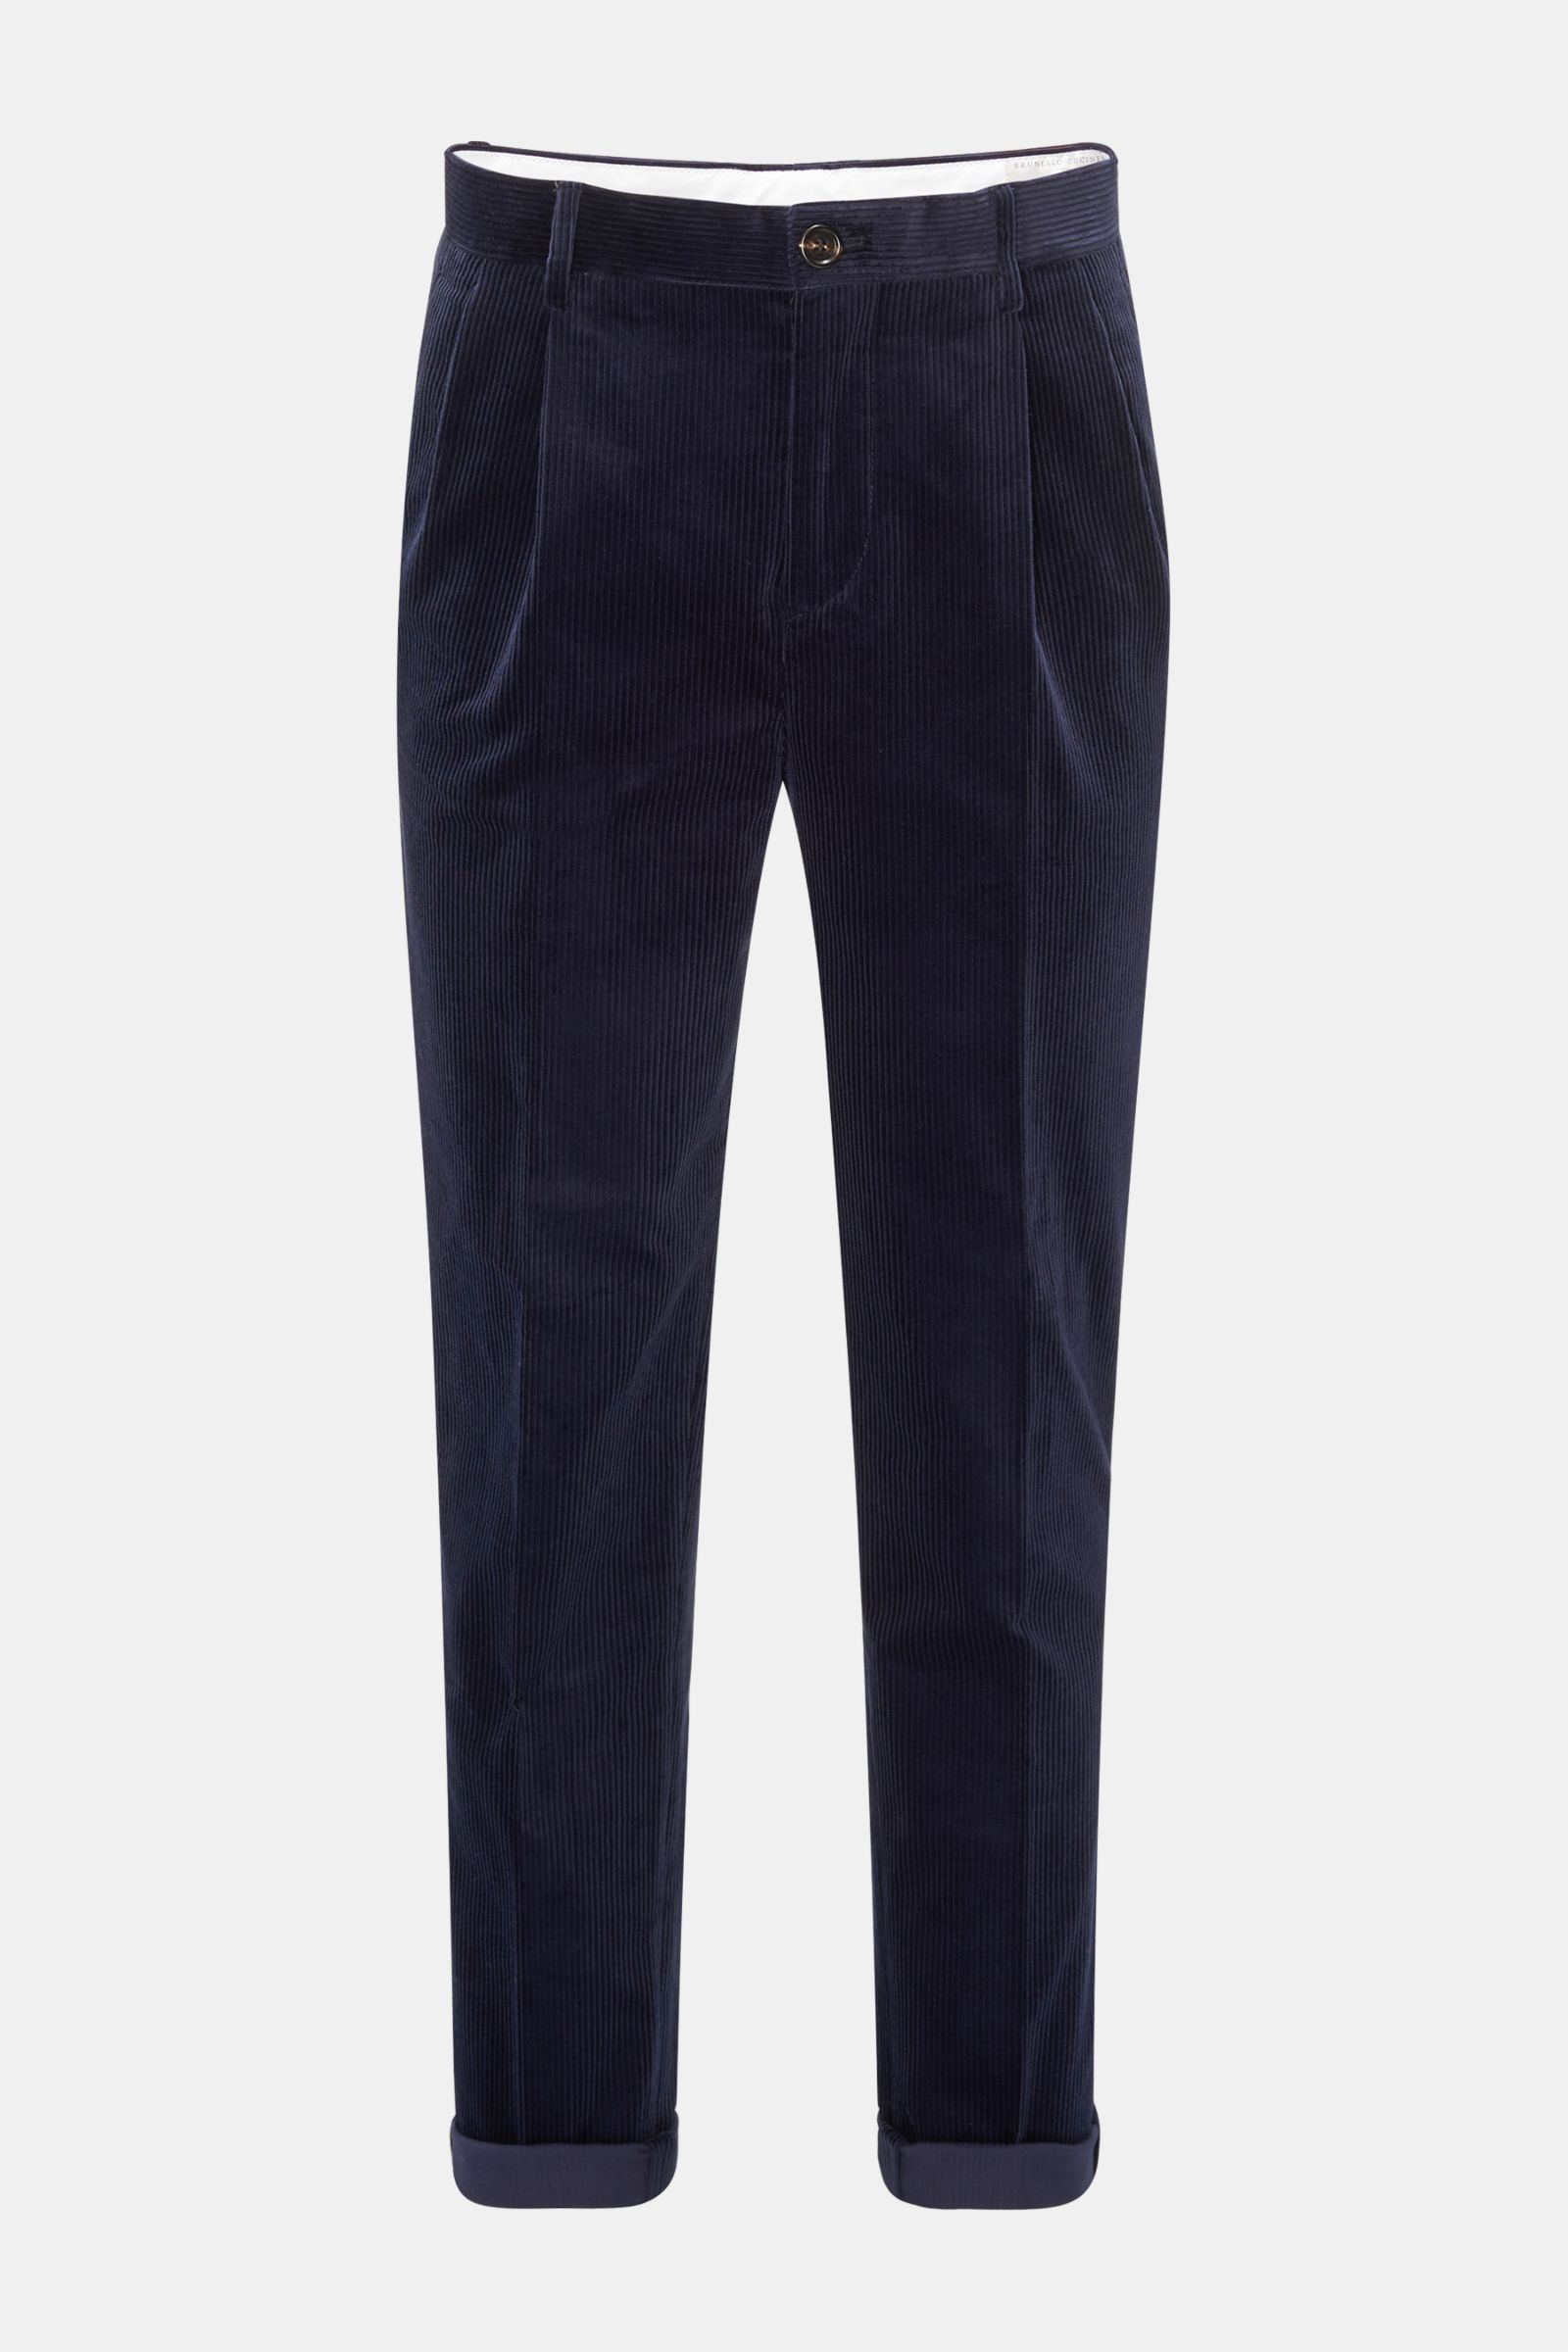 Cordhose 'Easy Fit' navy